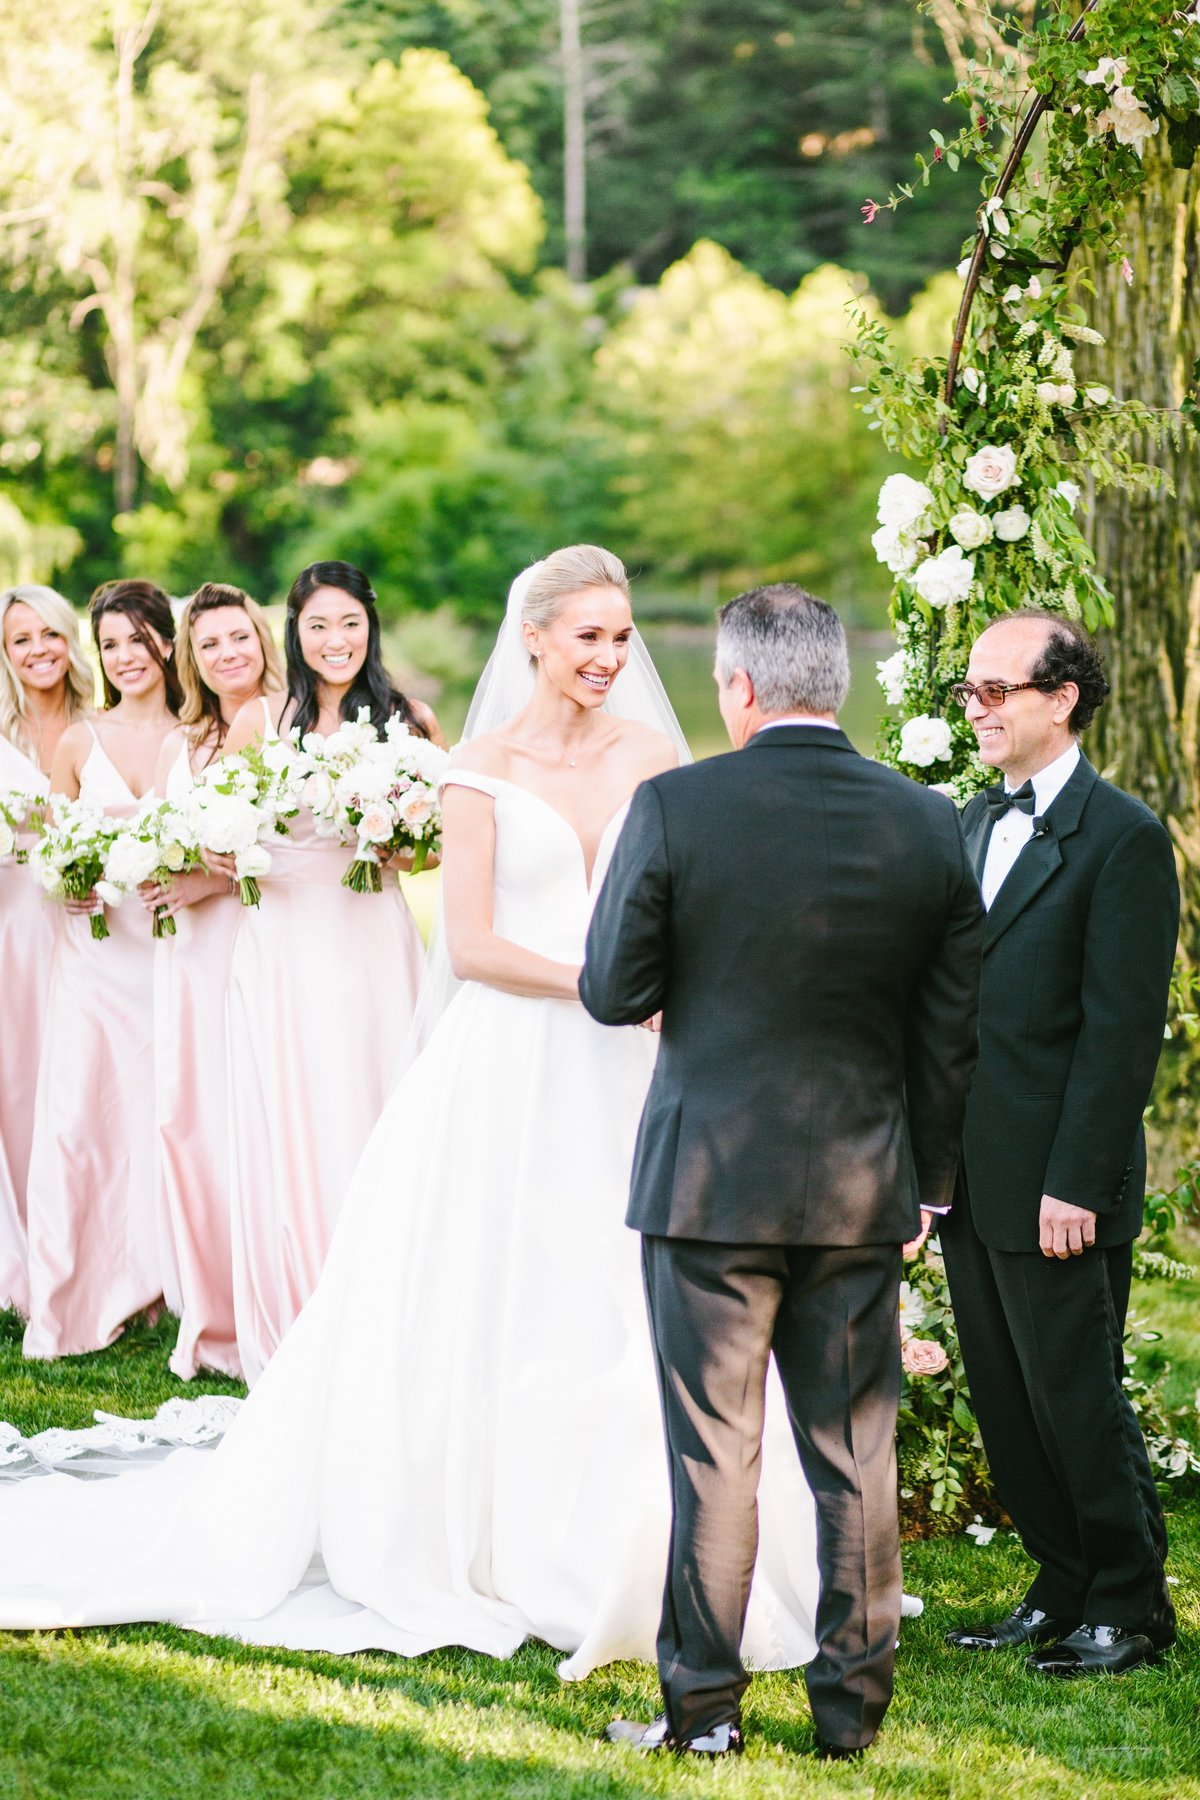 Best California Wedding Photographer-Jodee Debes Photography-382